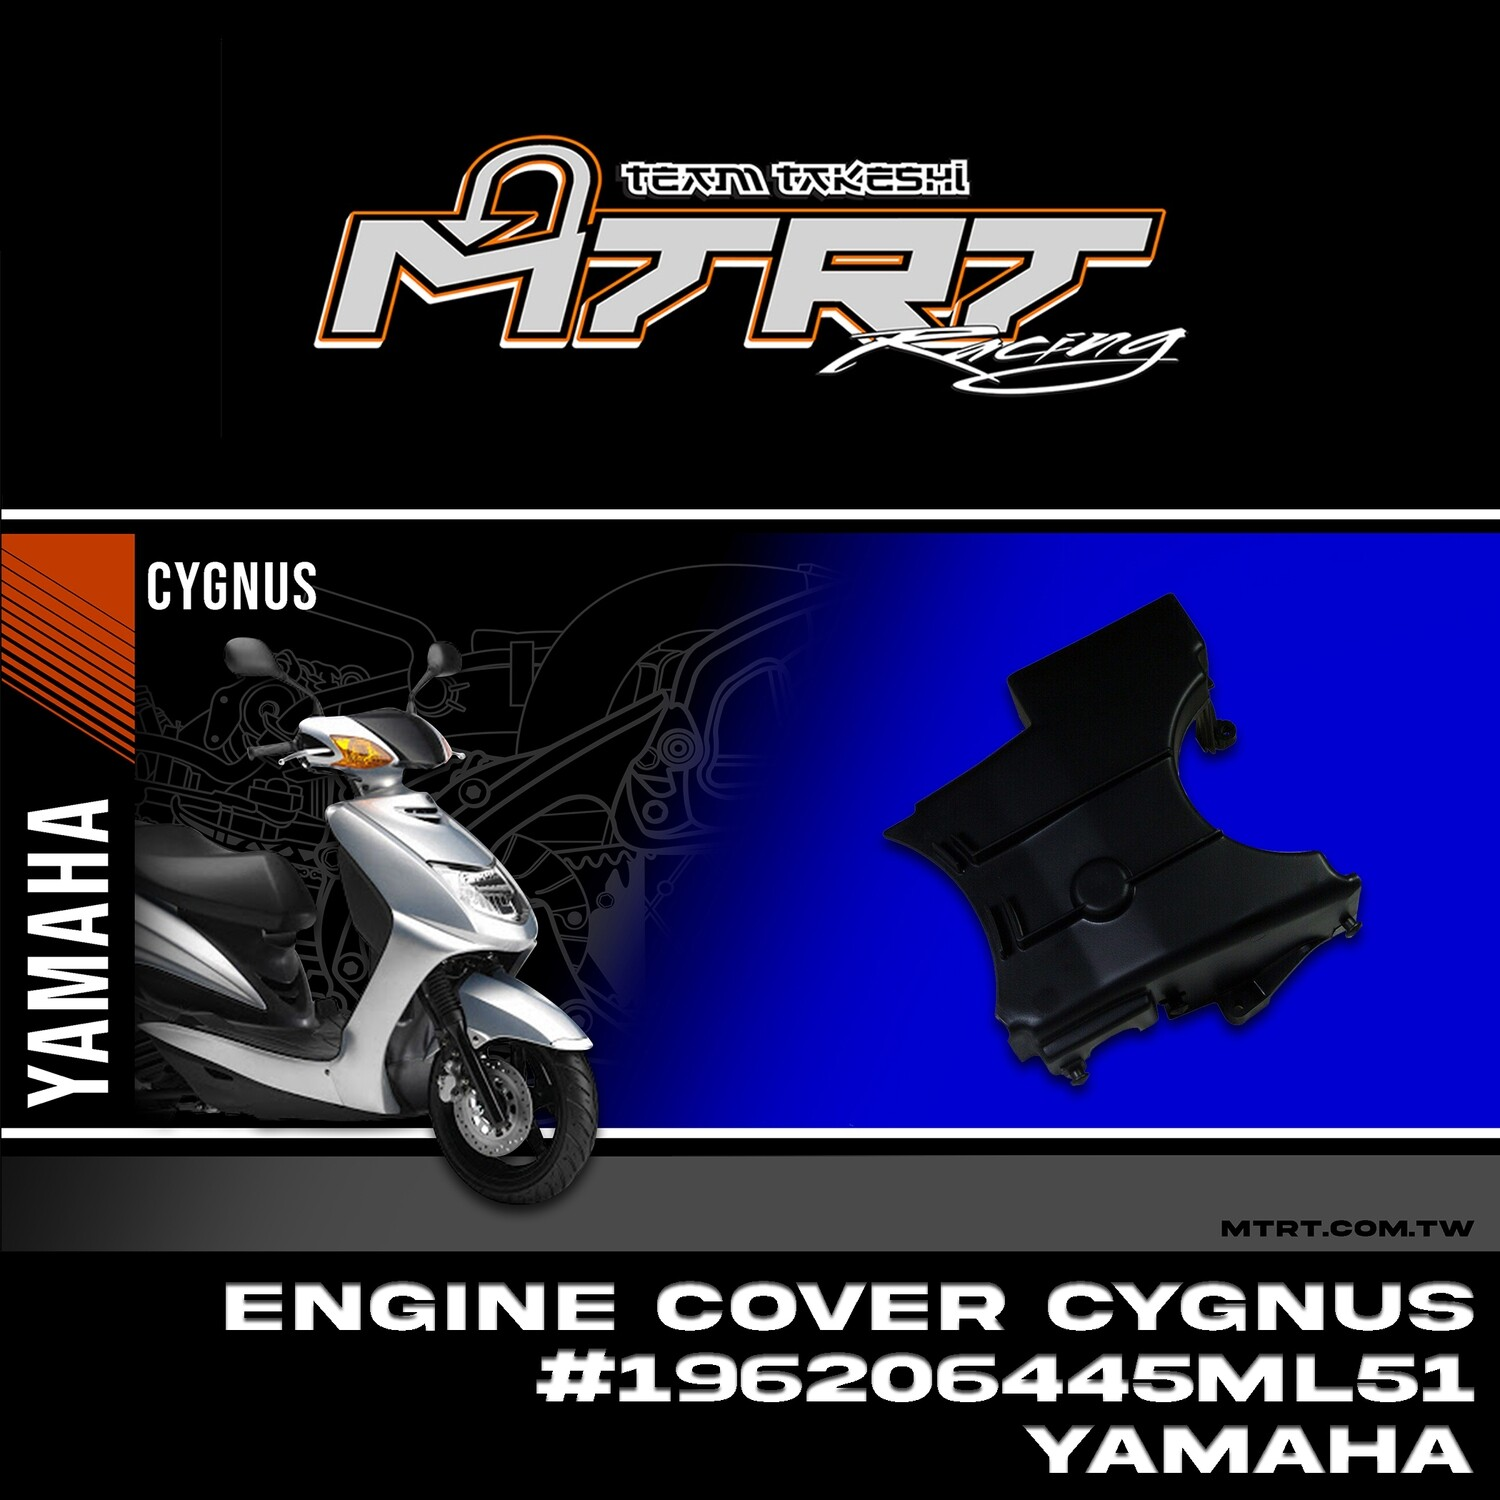 ENGINE COVER Cygnus #196206445ML51 YAMAHA